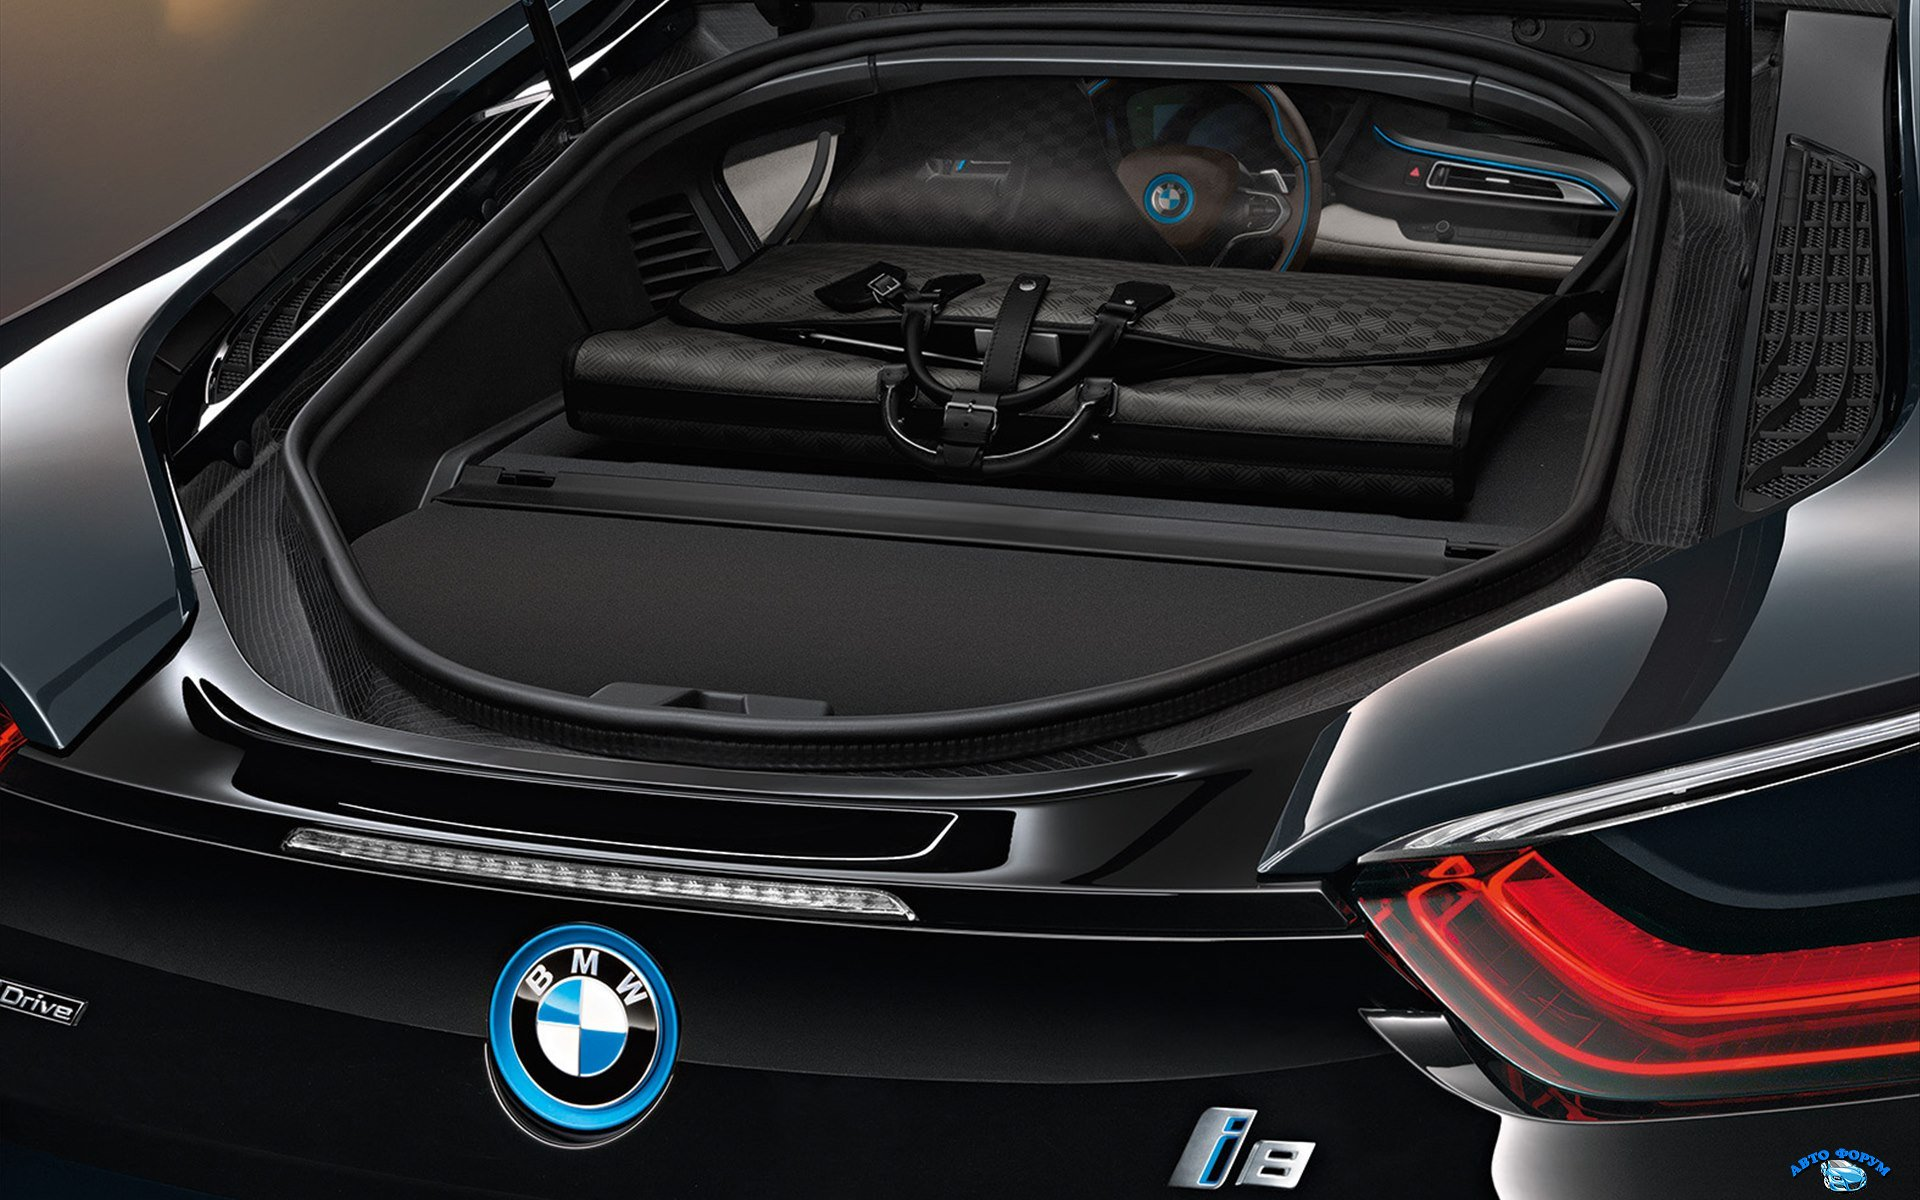 BMW-i8-2015-widescreen-04.jpg